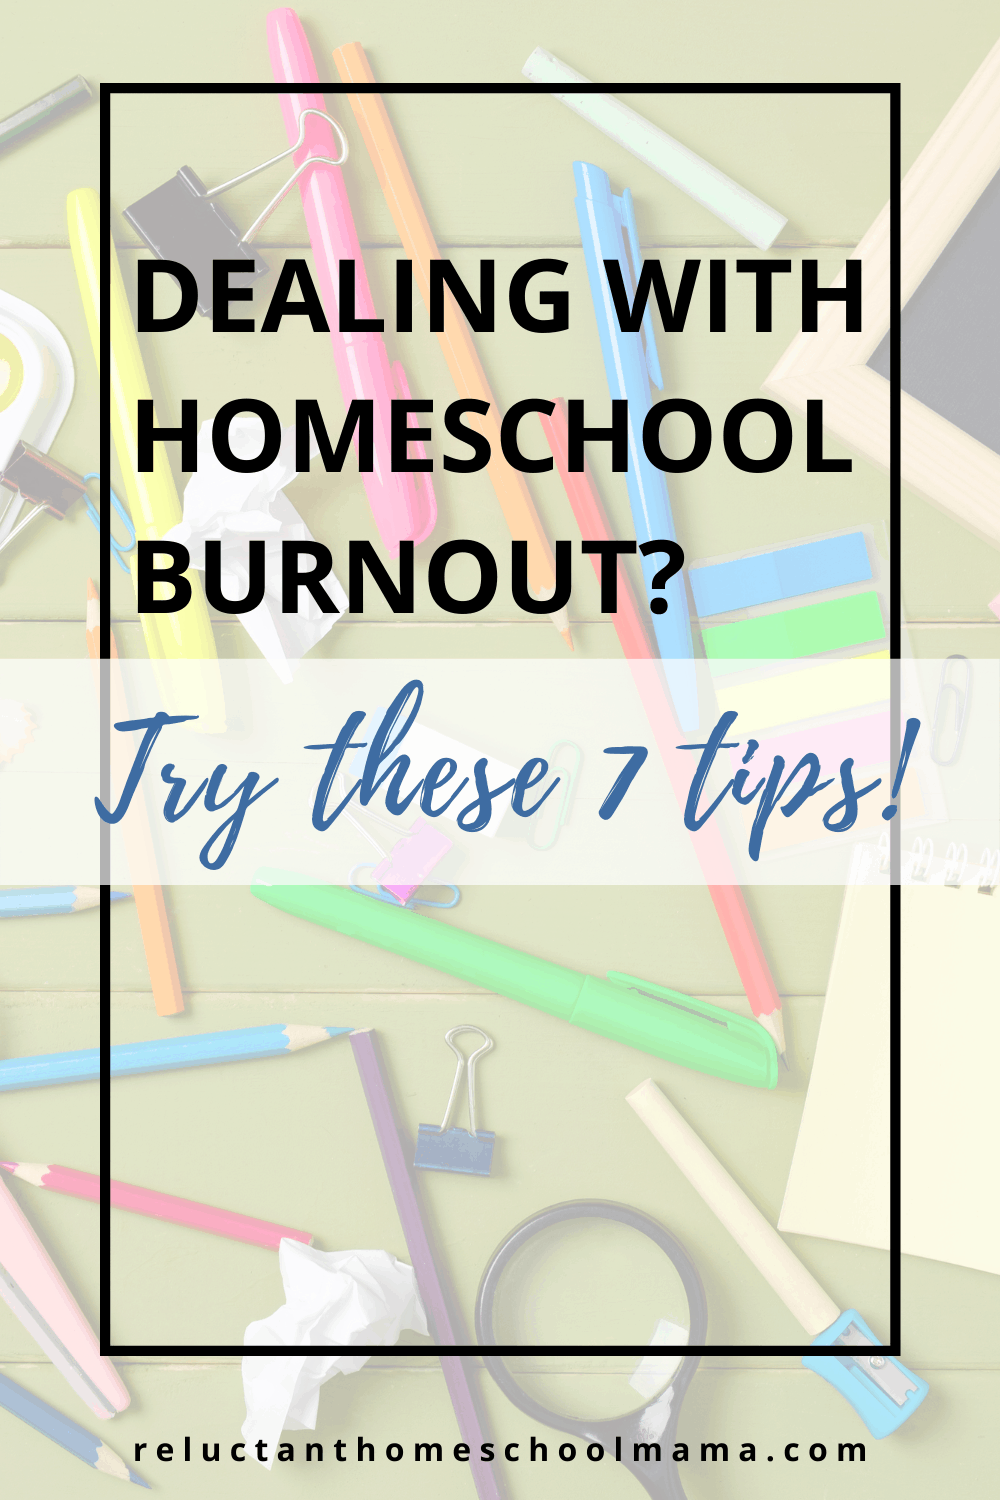 Dealing with Homeschool Burnout? You Need These 7 Great Tips!